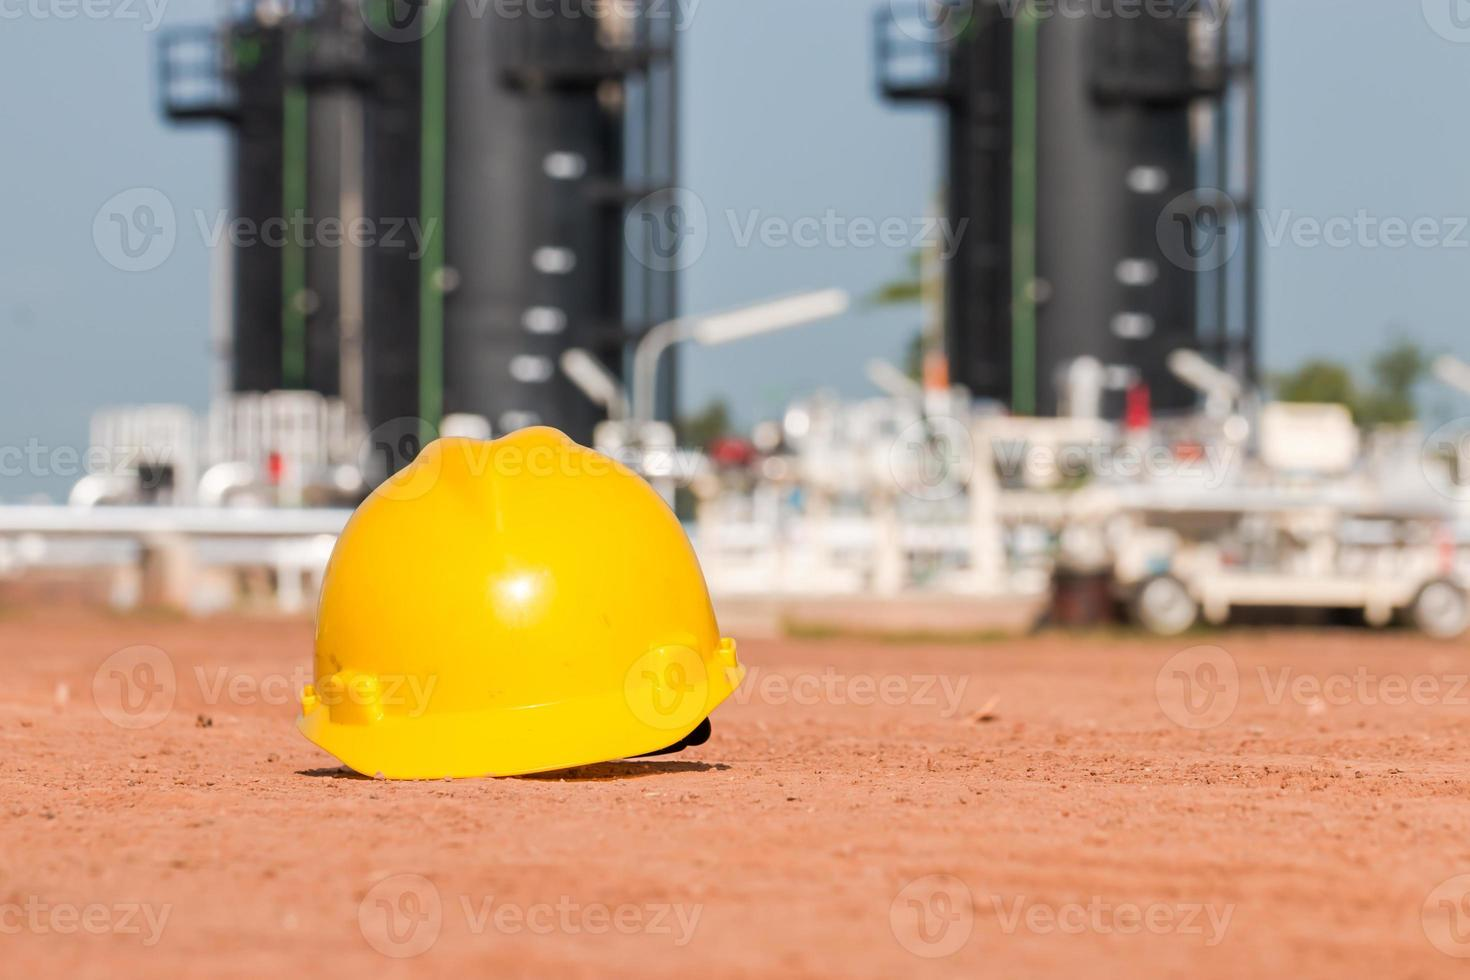 Hard hat that is safety equipment in oilfield photo